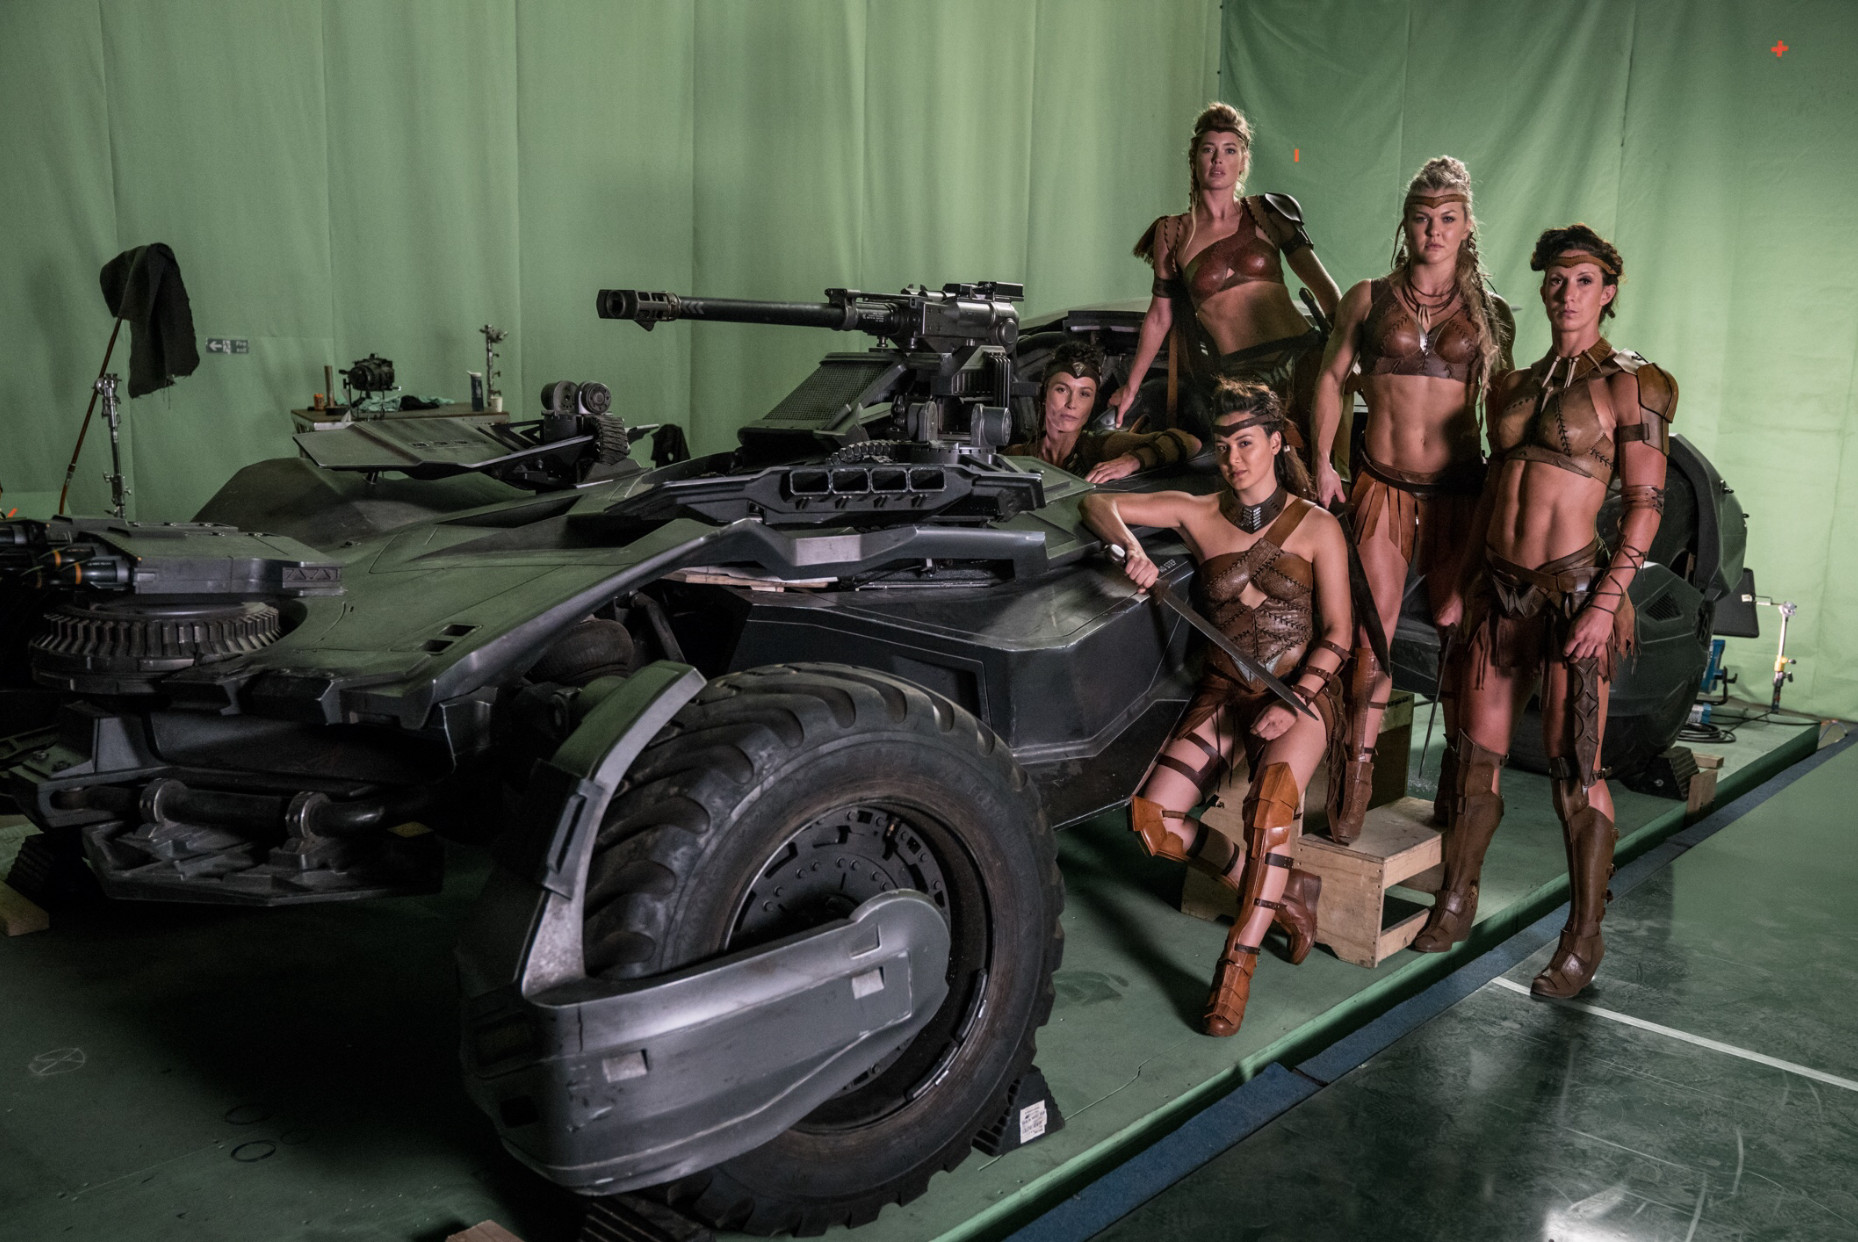 Zack Snyder Batmobile Amazons Justice League